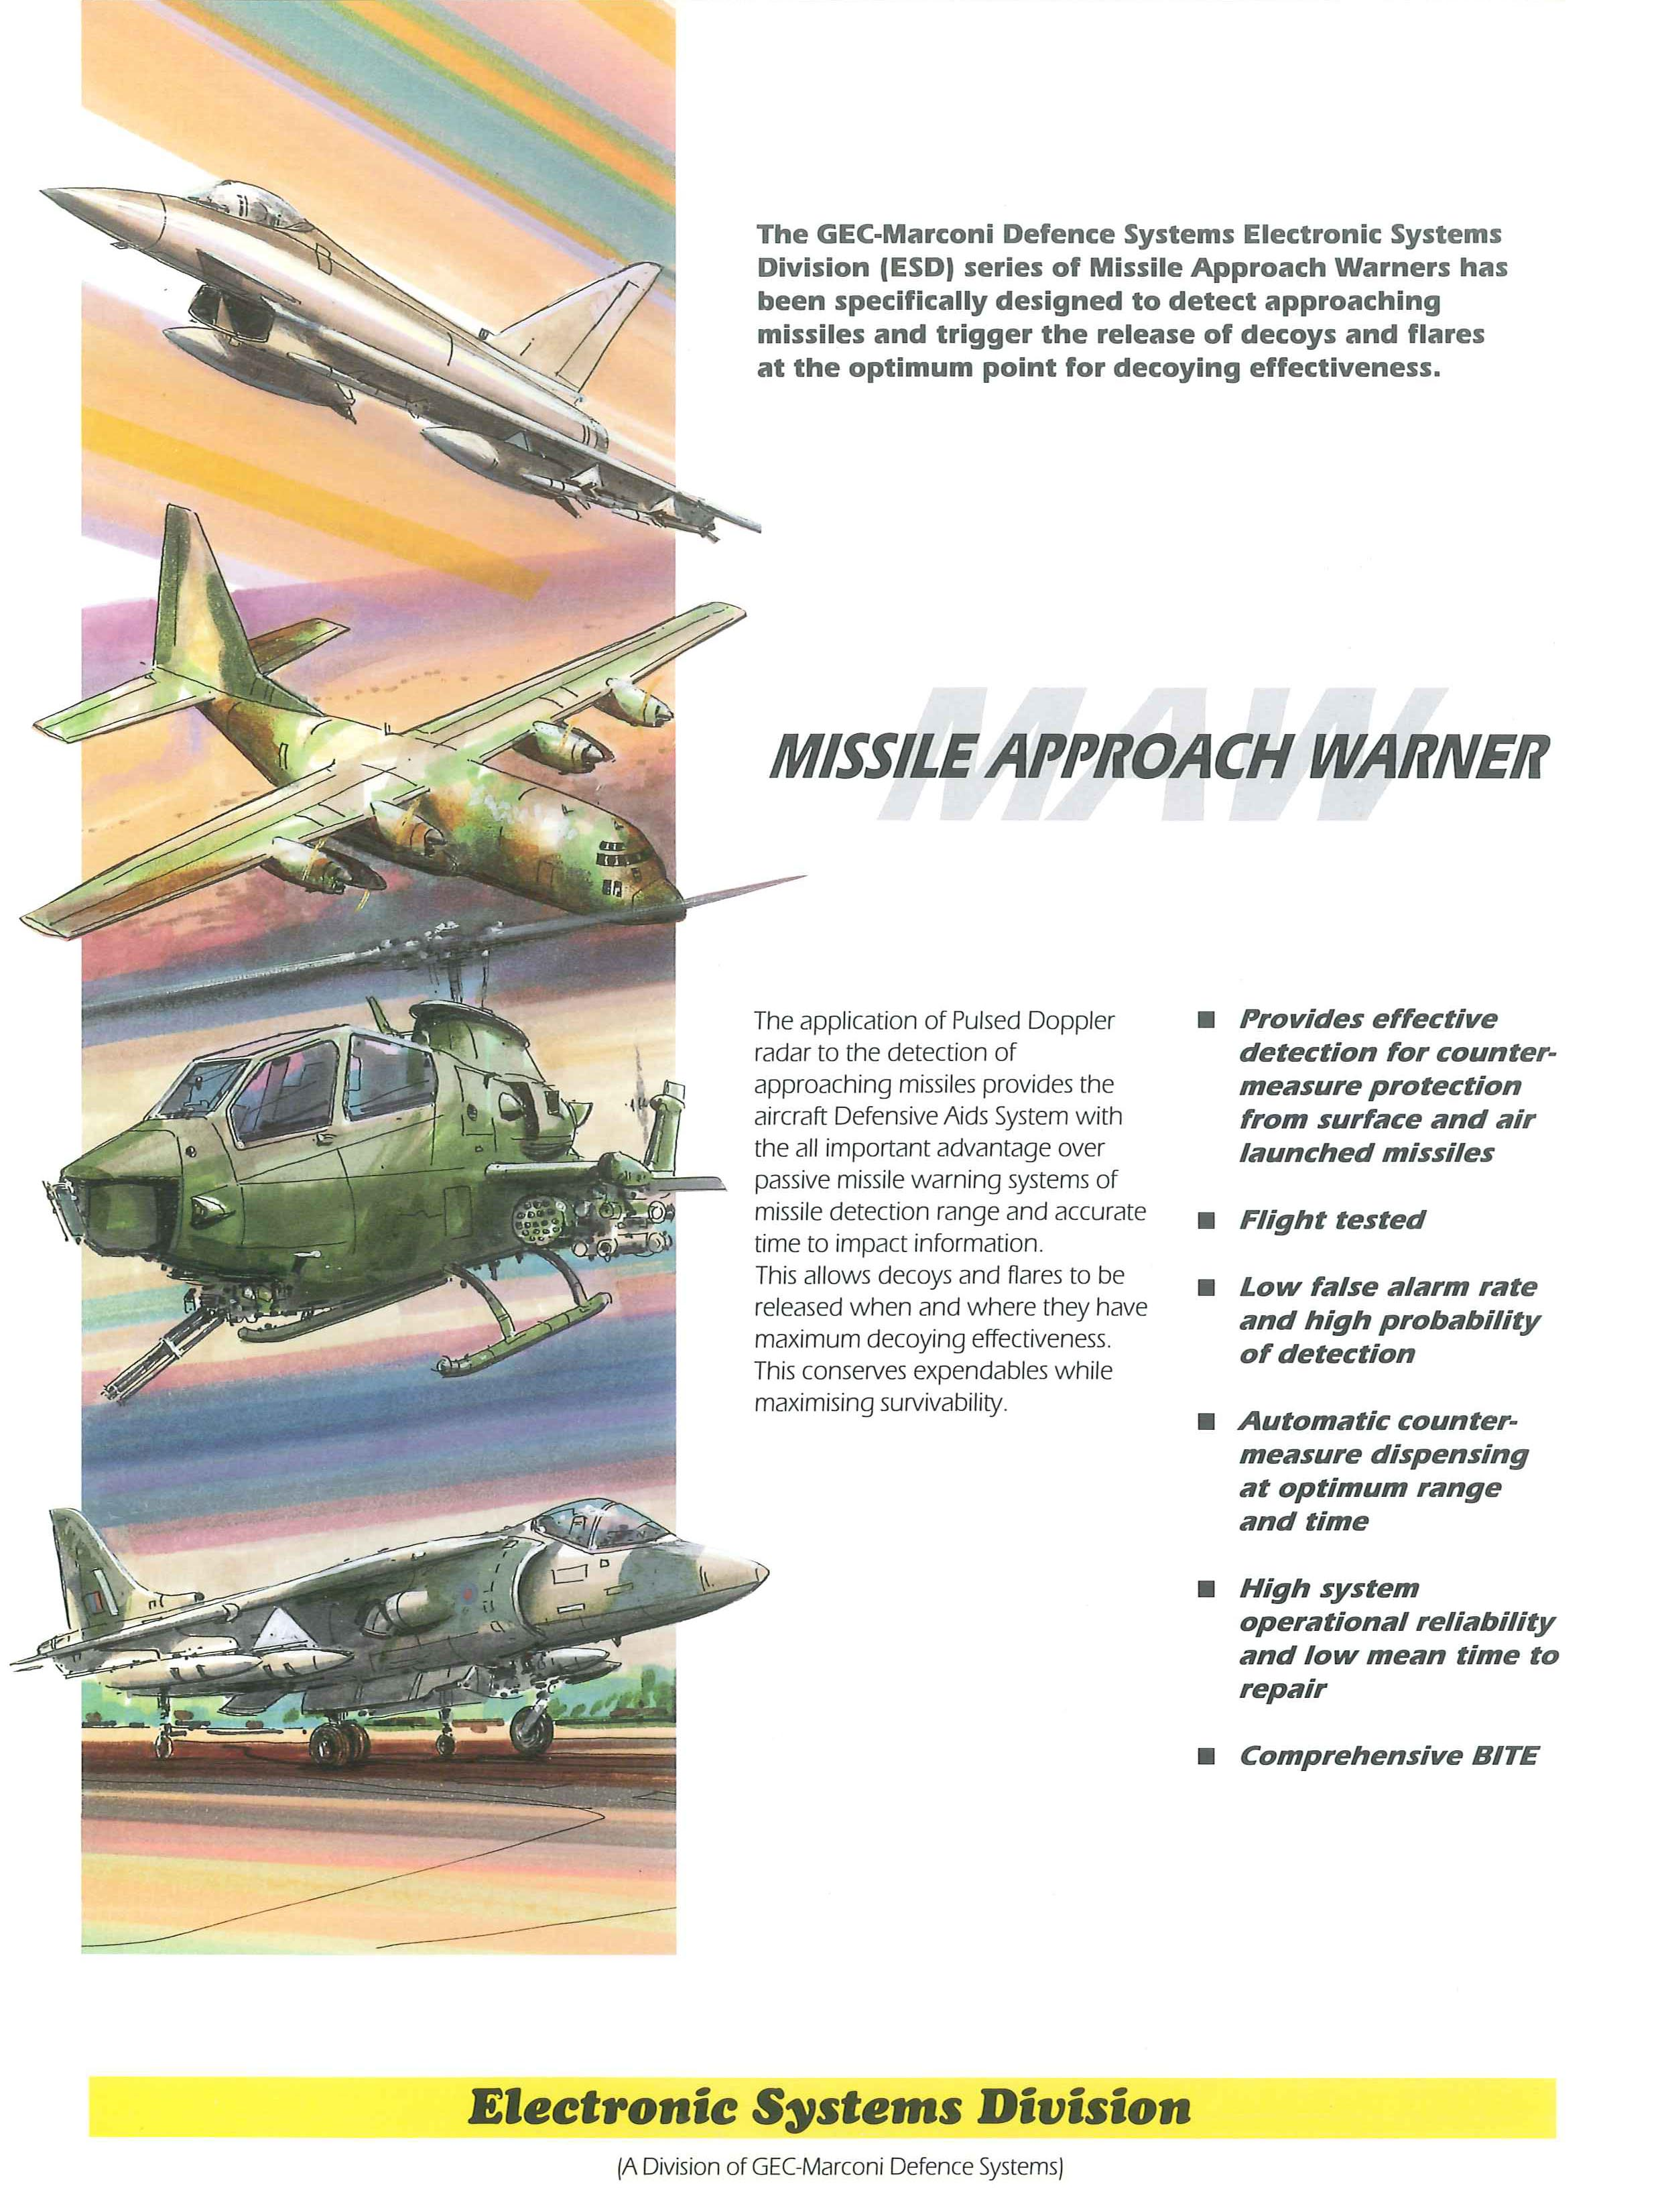 Missile Approach Warner and Advanced Missile Detection System, PVS2000